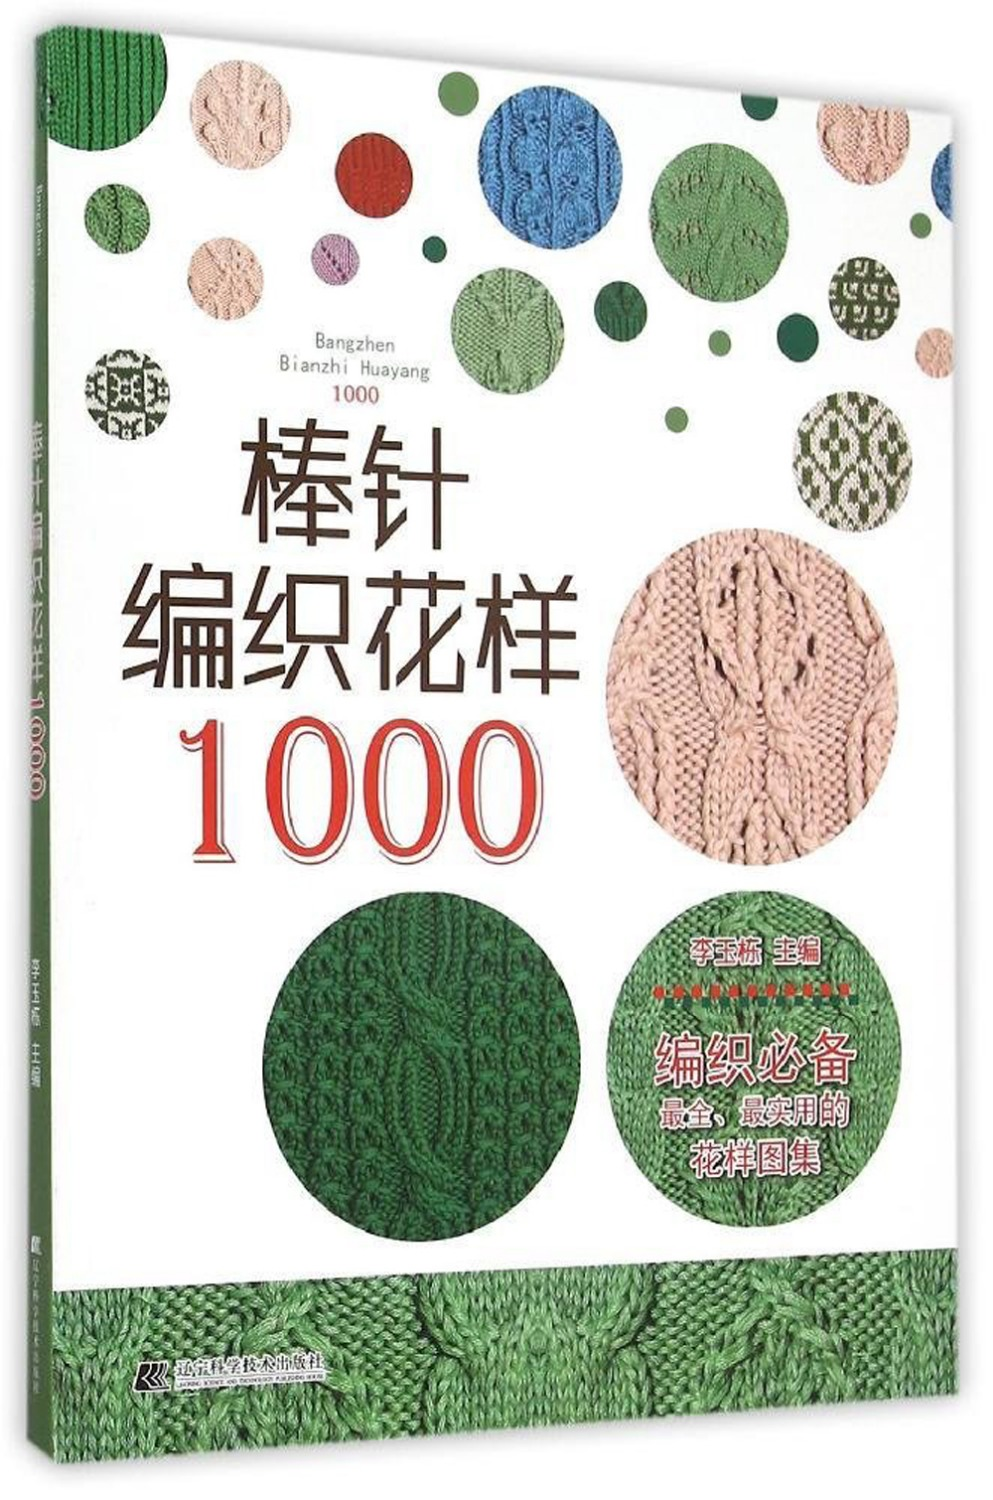 Chinese Knitting Pattern Sweater Book With 1000 Different Pattern Novice Zero Basics Learning Needle Knitting Tutorial Books creative knitting pattern book with 218 simple beautiful patterns sweater weaving tutorial textbook in chinese